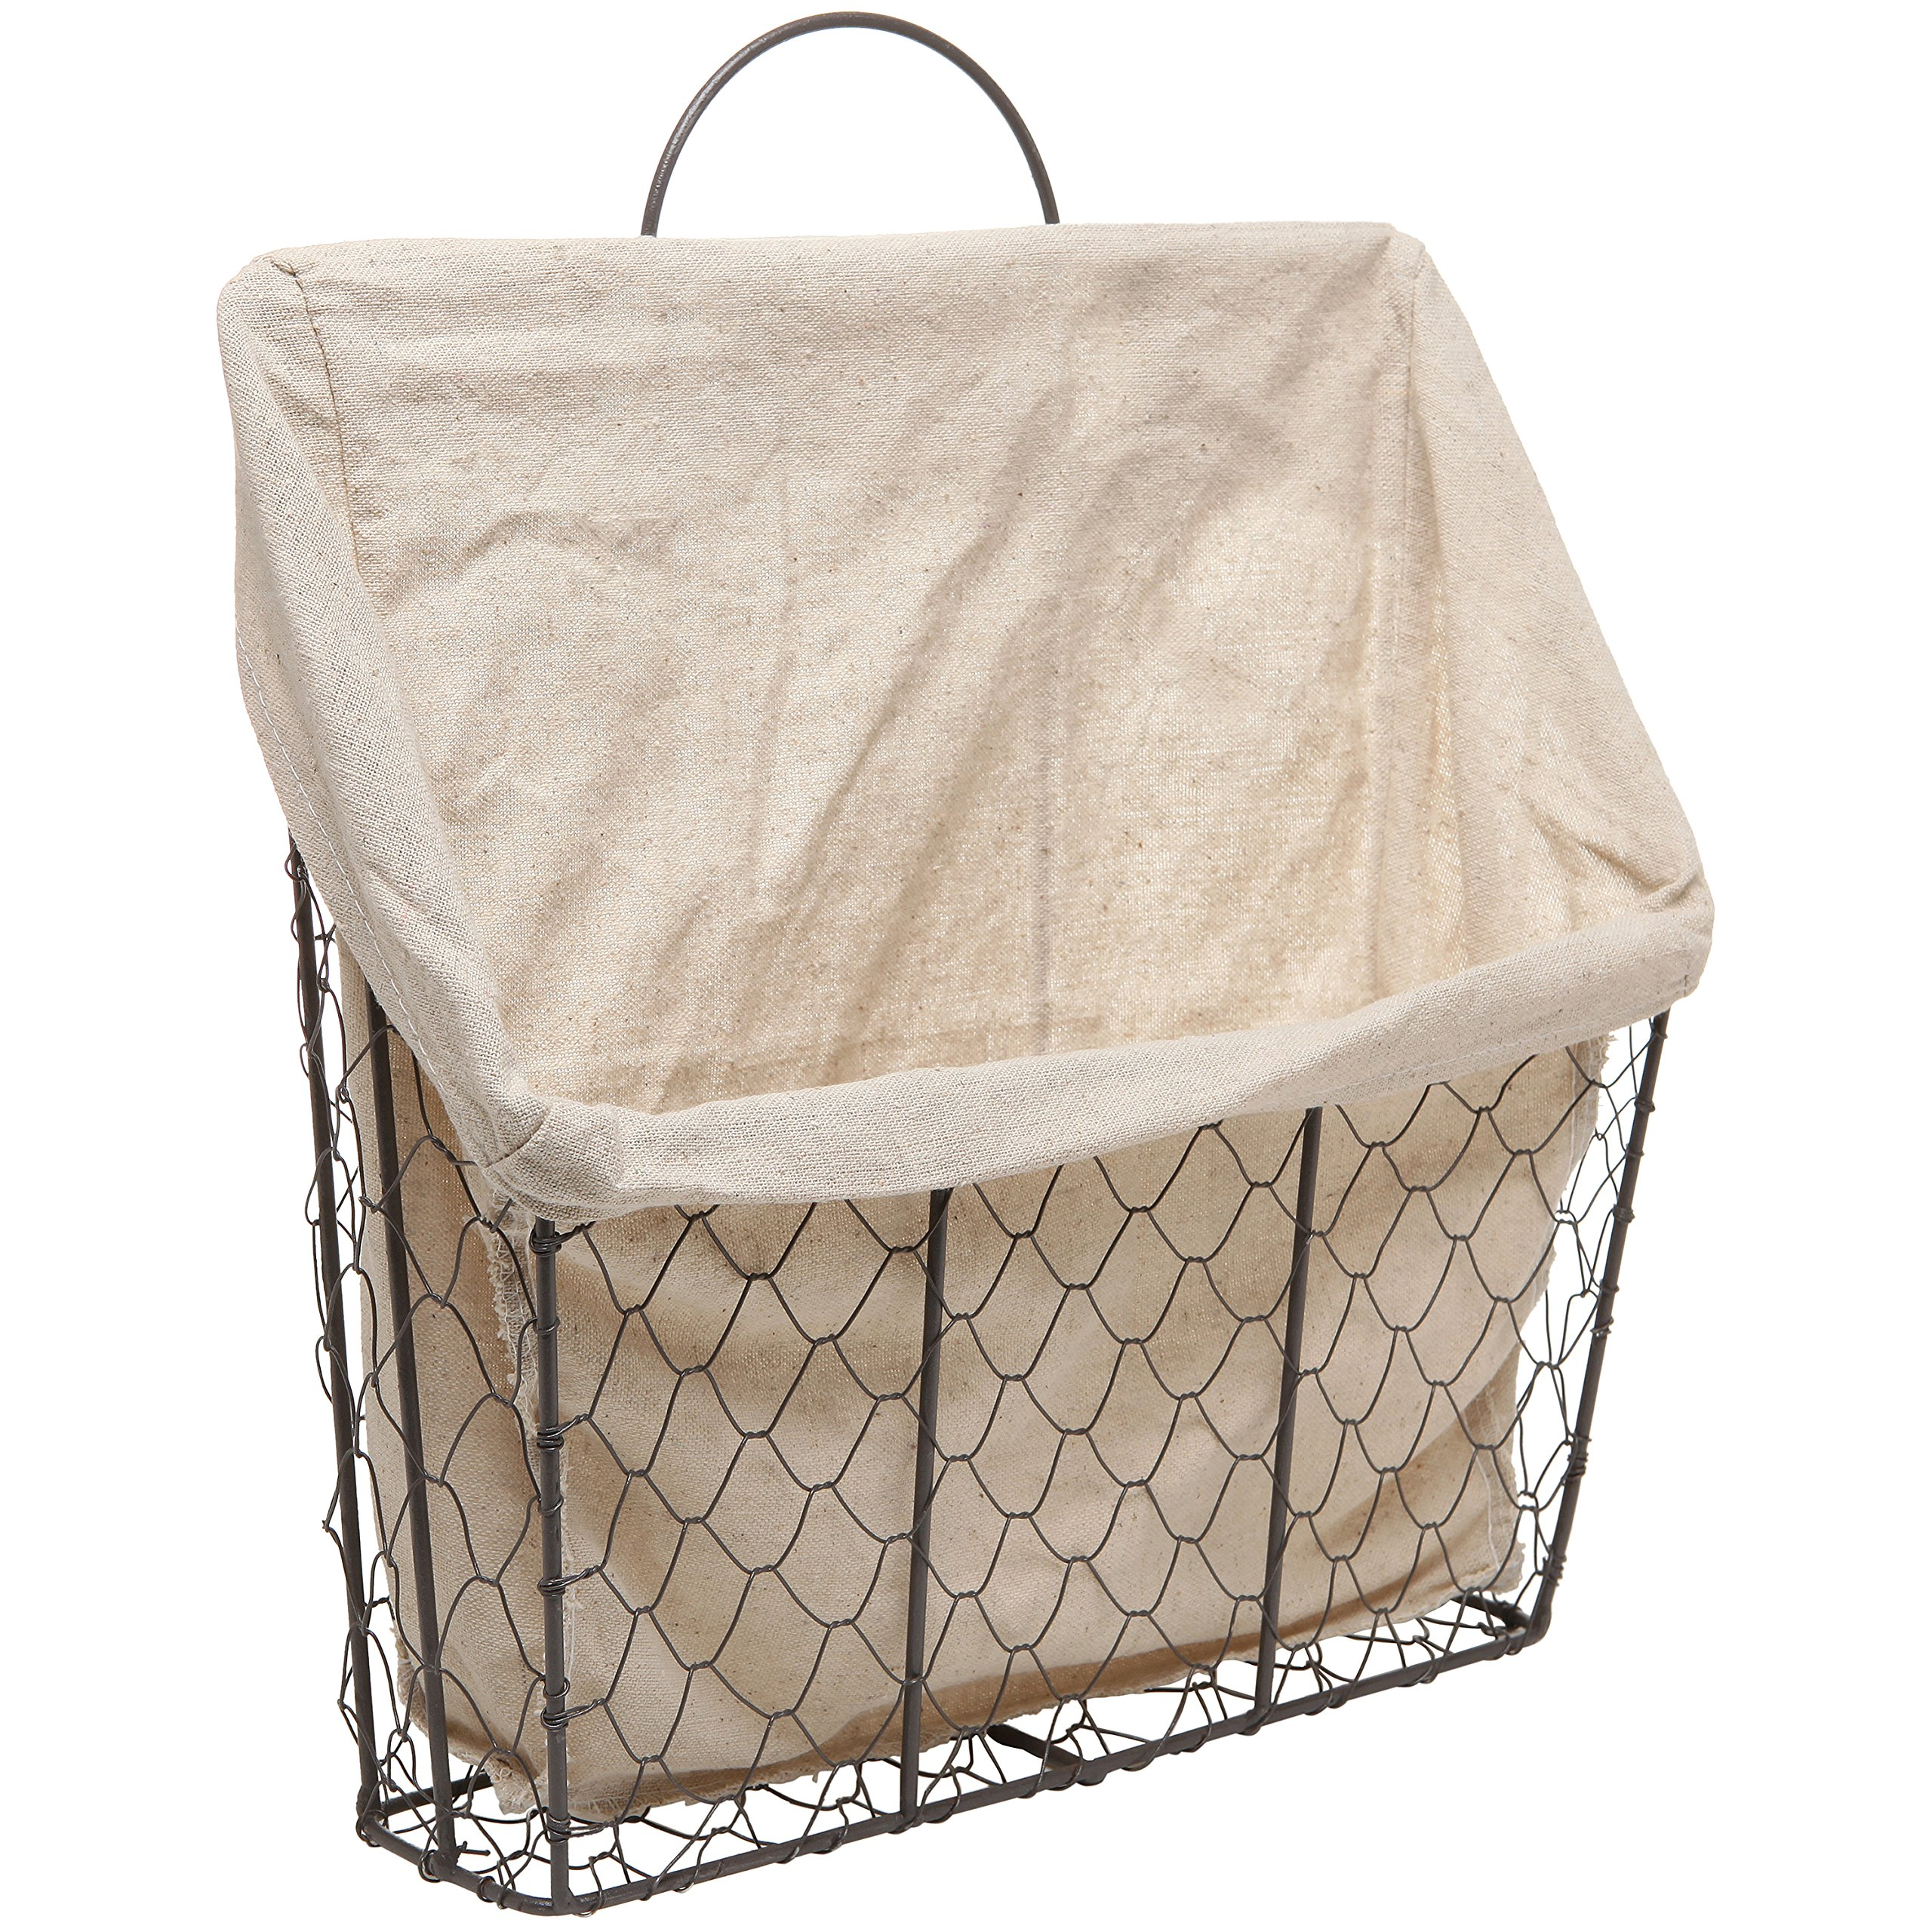 Country Rustic Wall Mounted Metal Wire Hanging Magazine / Mail Storage Basket Bin w/ Beige Linen Fabric